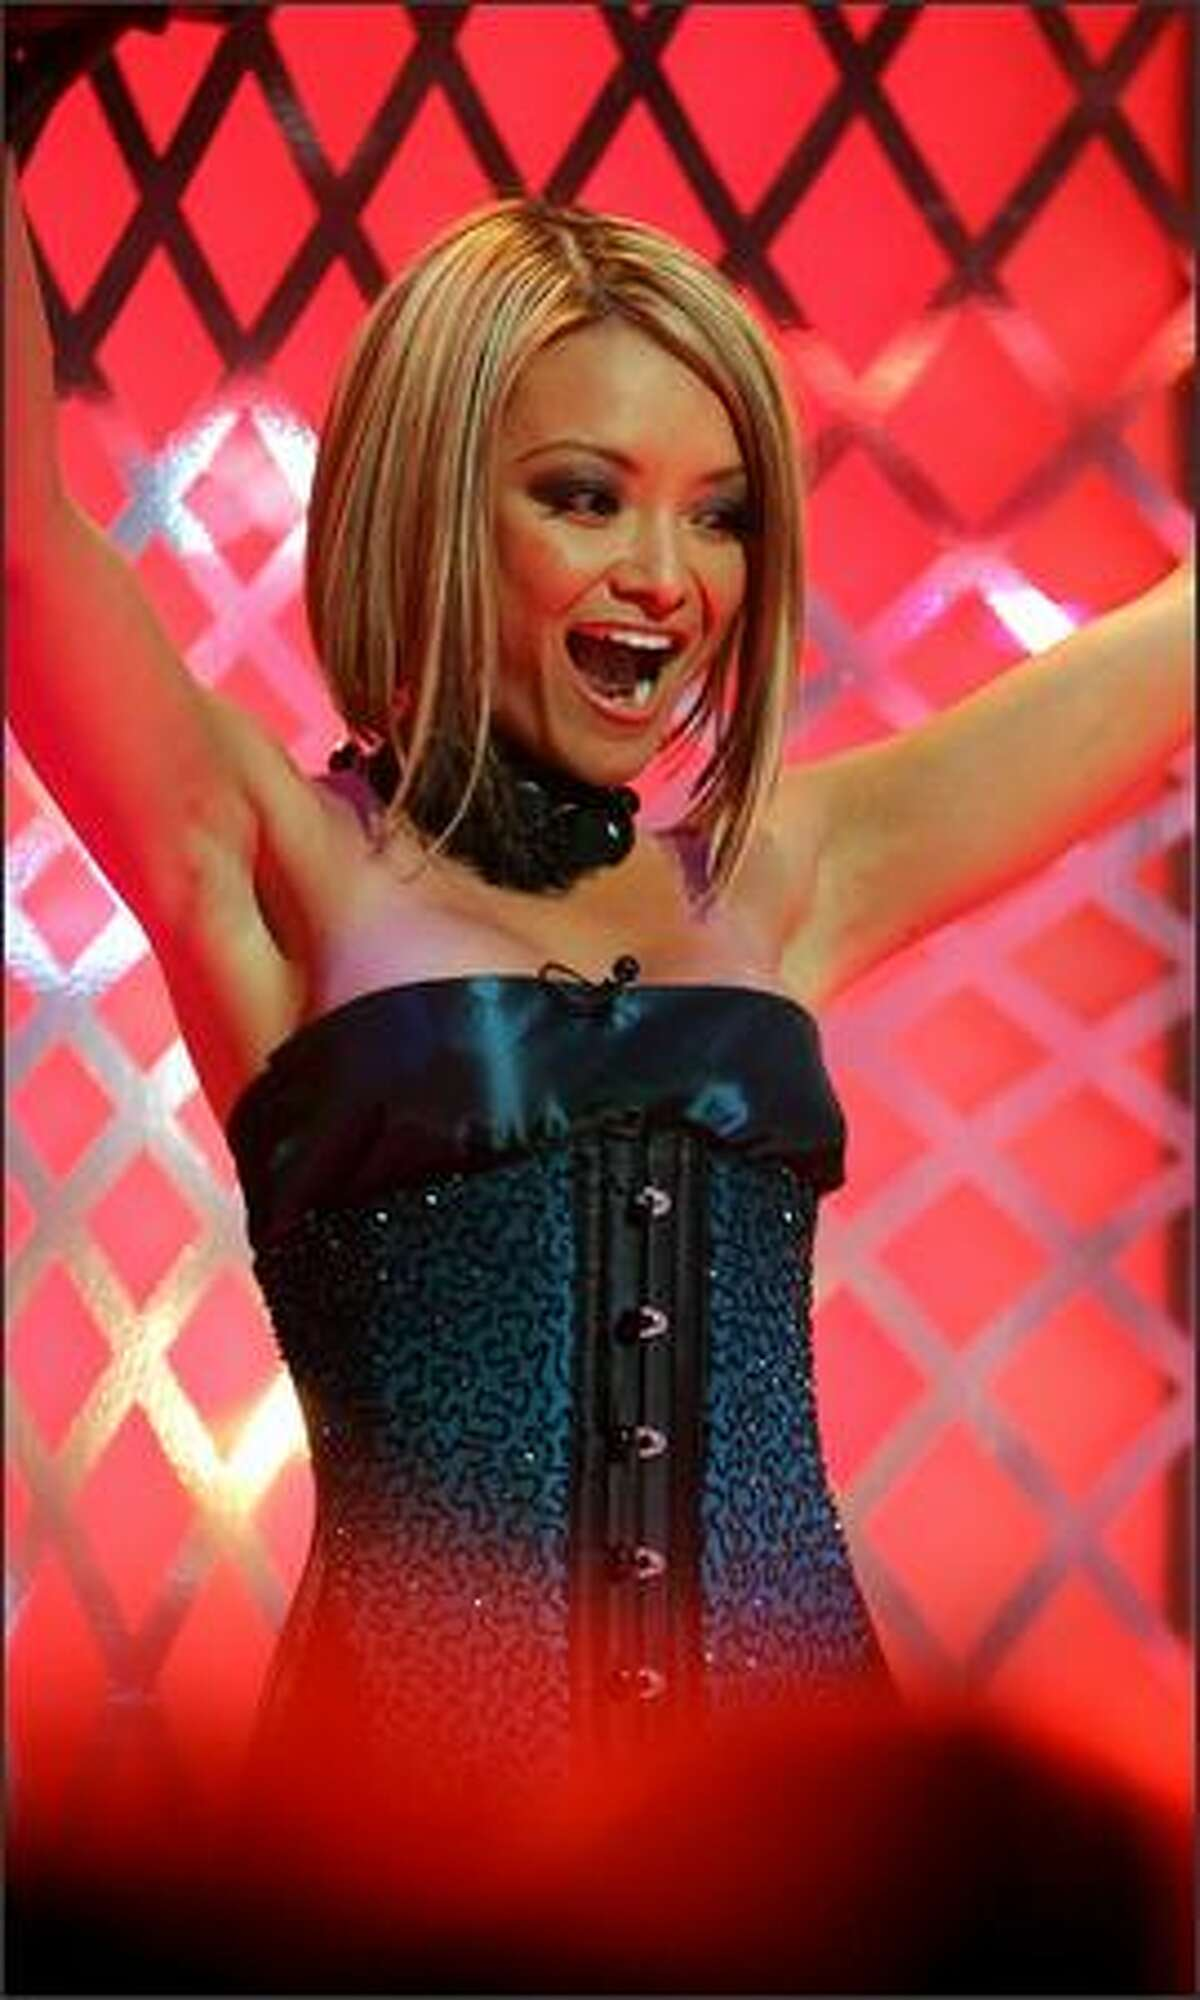 TV personality Tila Tequila attends Tila Tequila's MTV New Year's Eve Masquerade 2008 at the MTV Studios in New York City.